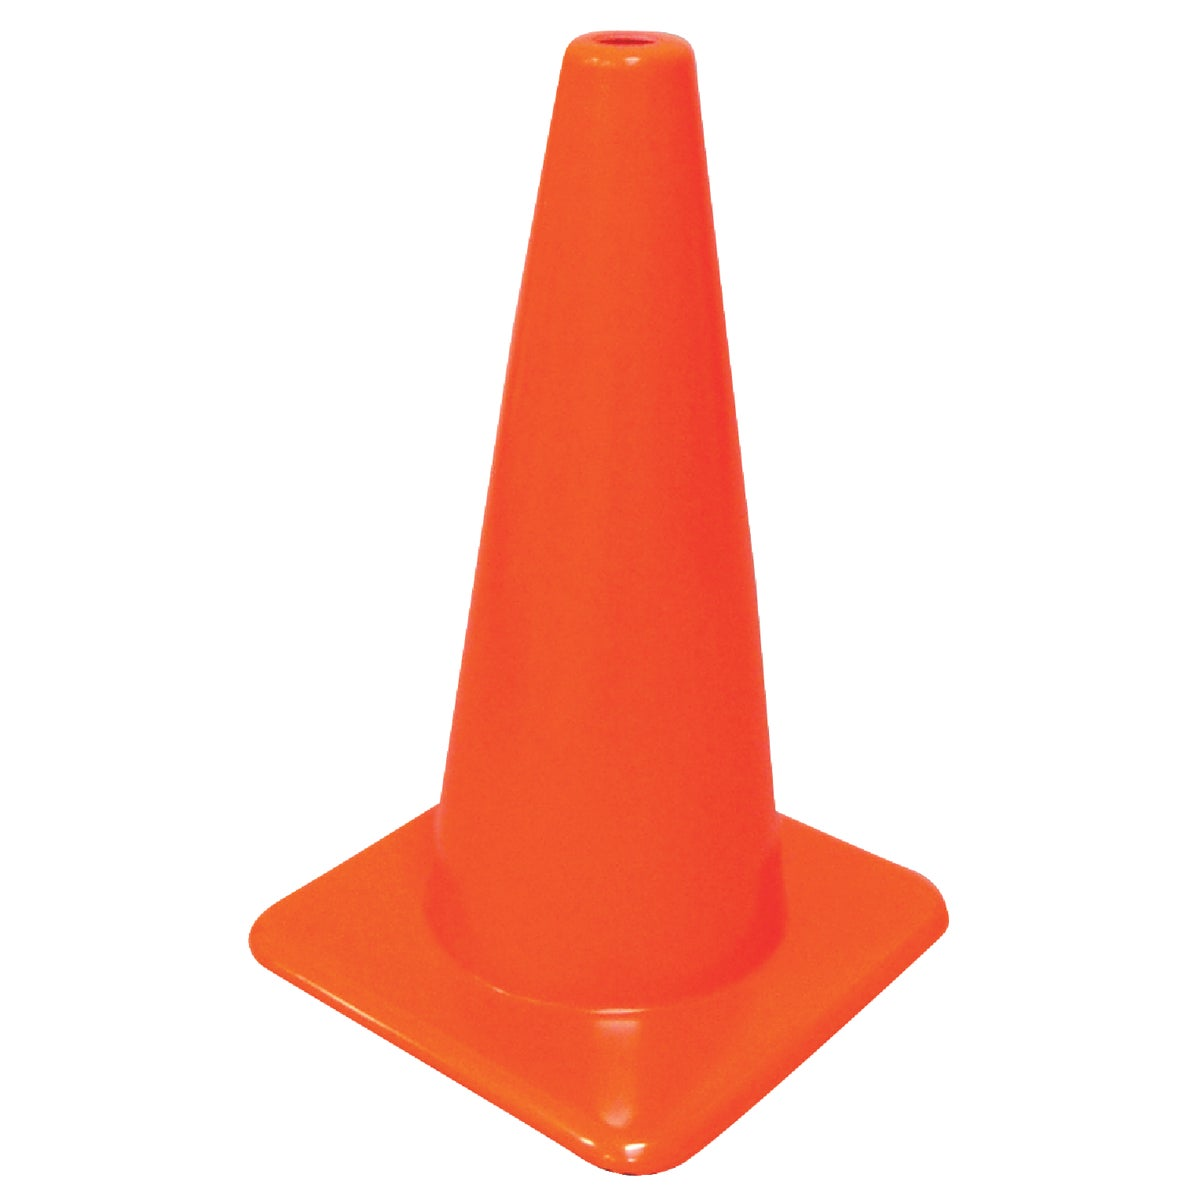 18X11.25 SAFETY CONE